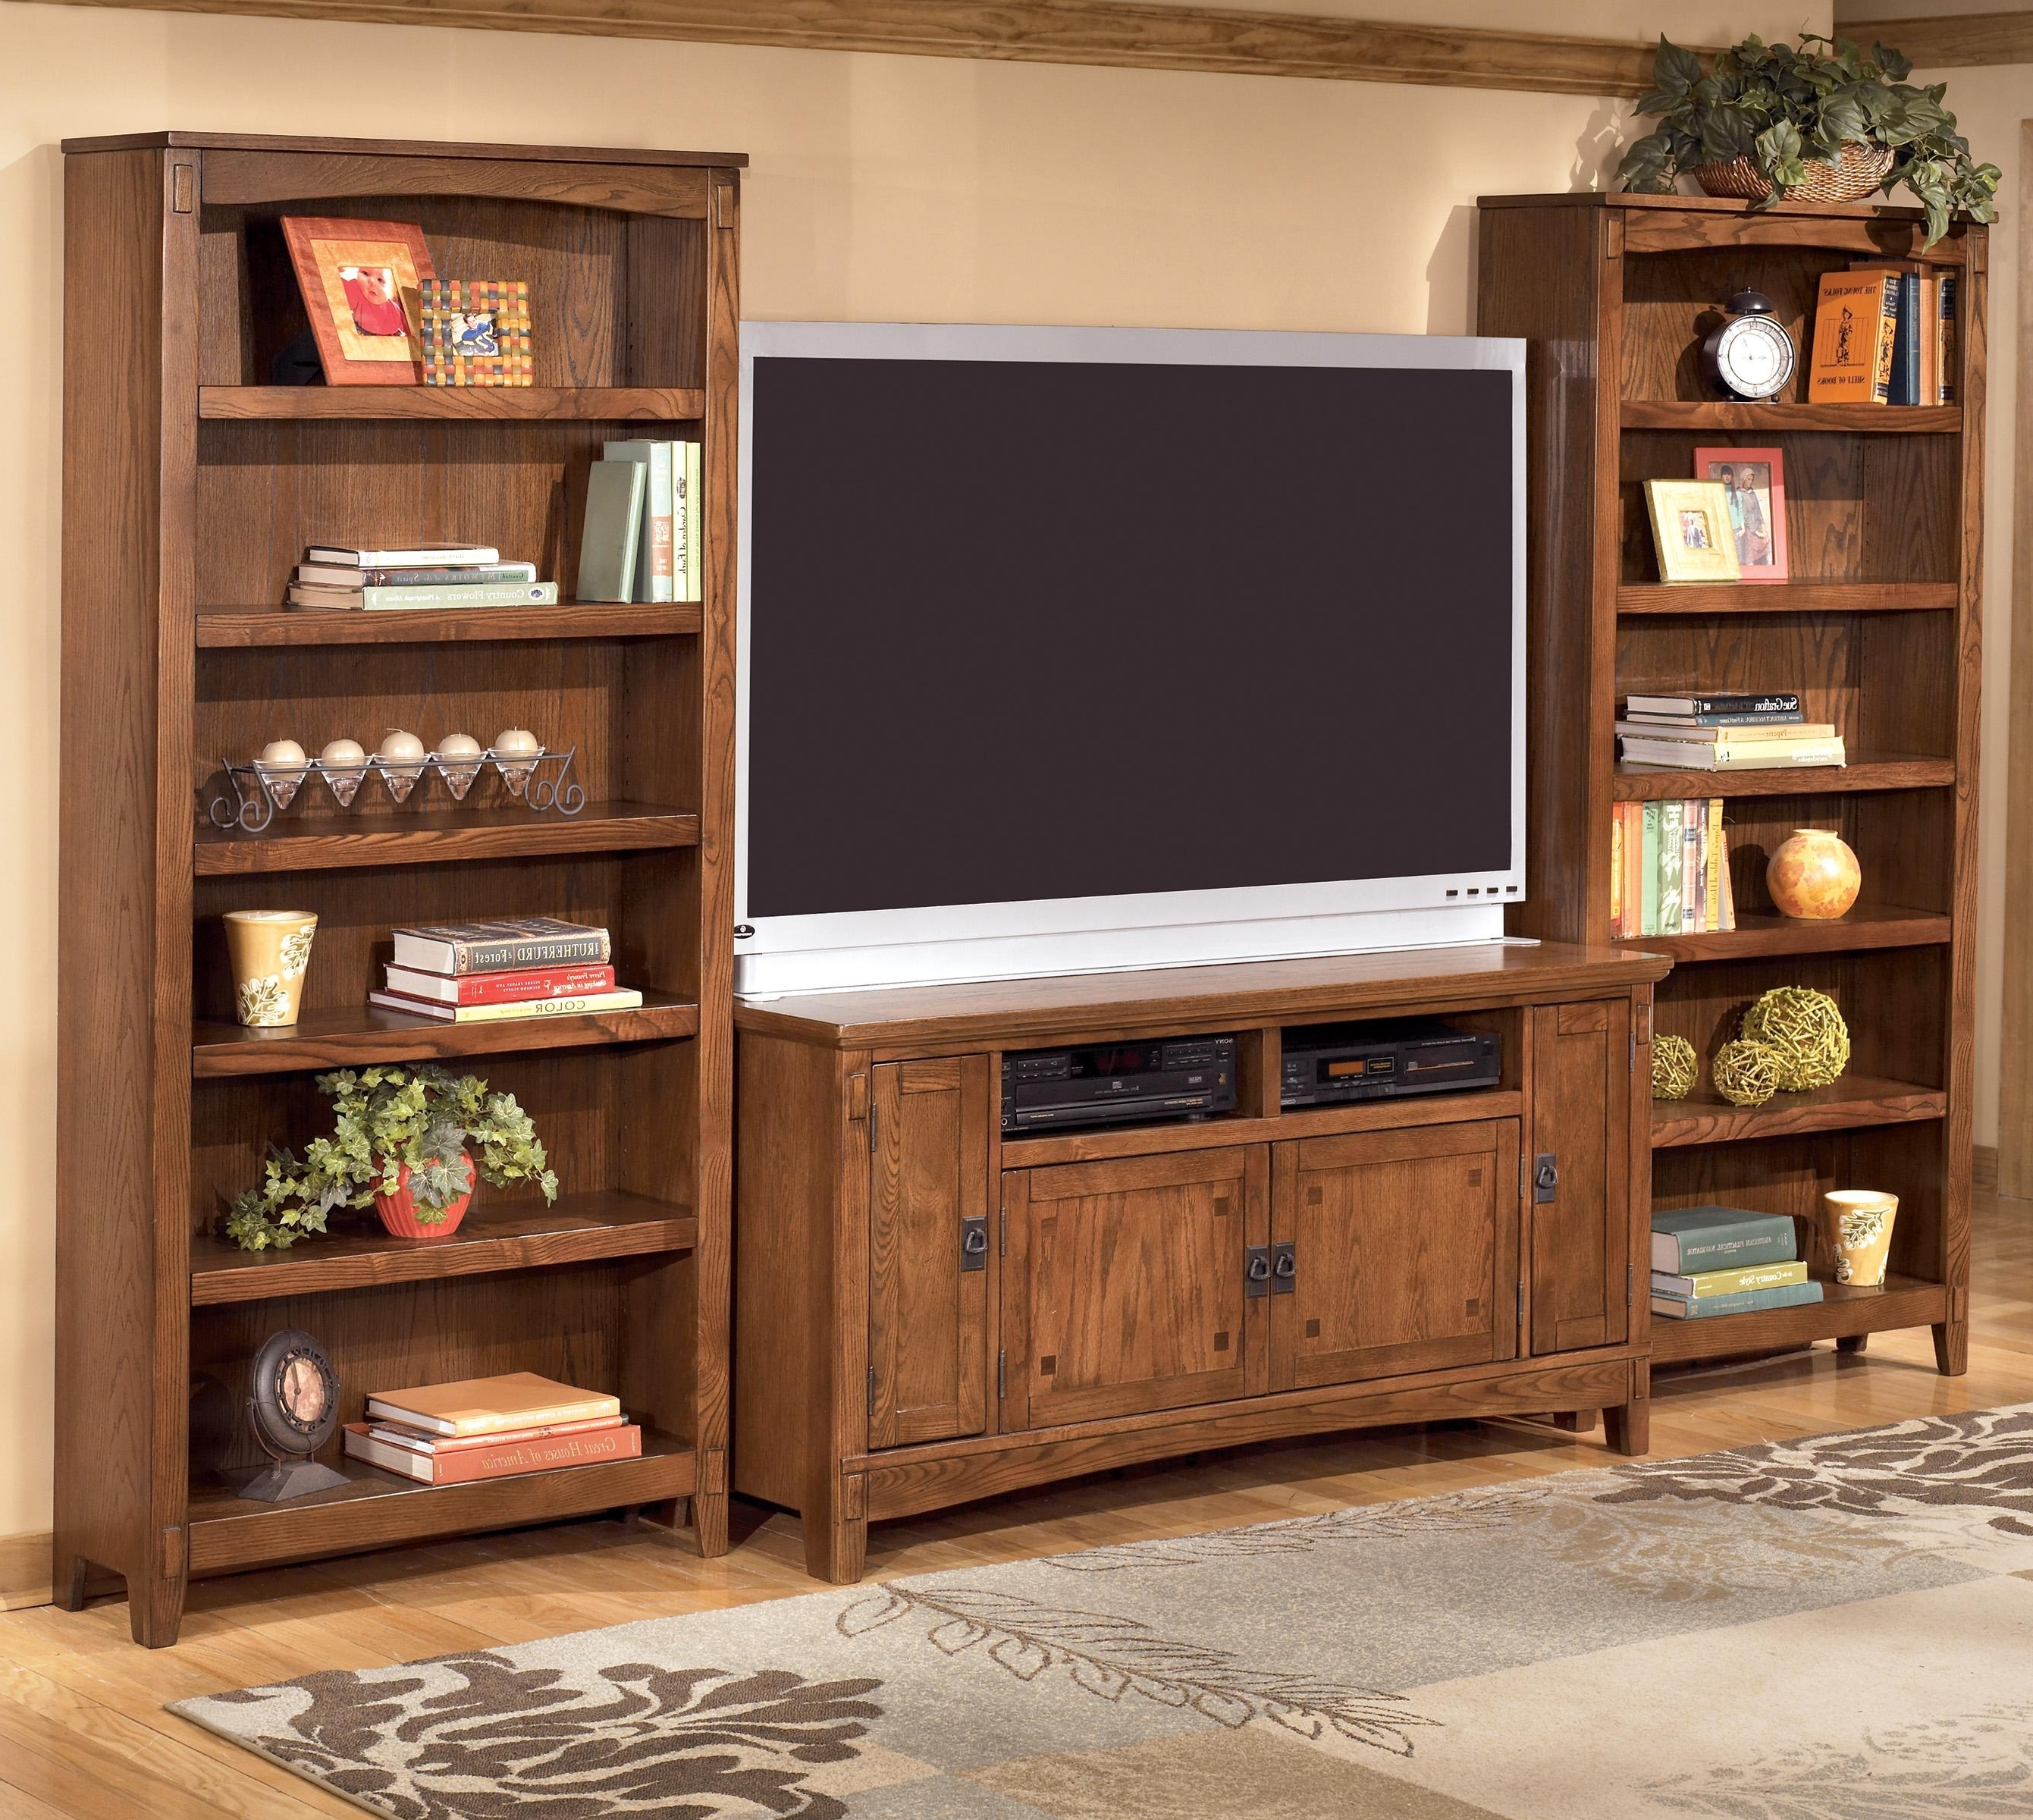 60 Inch Tv Stand & 2 Large Bookcasesashley Furniture (View 2 of 15)